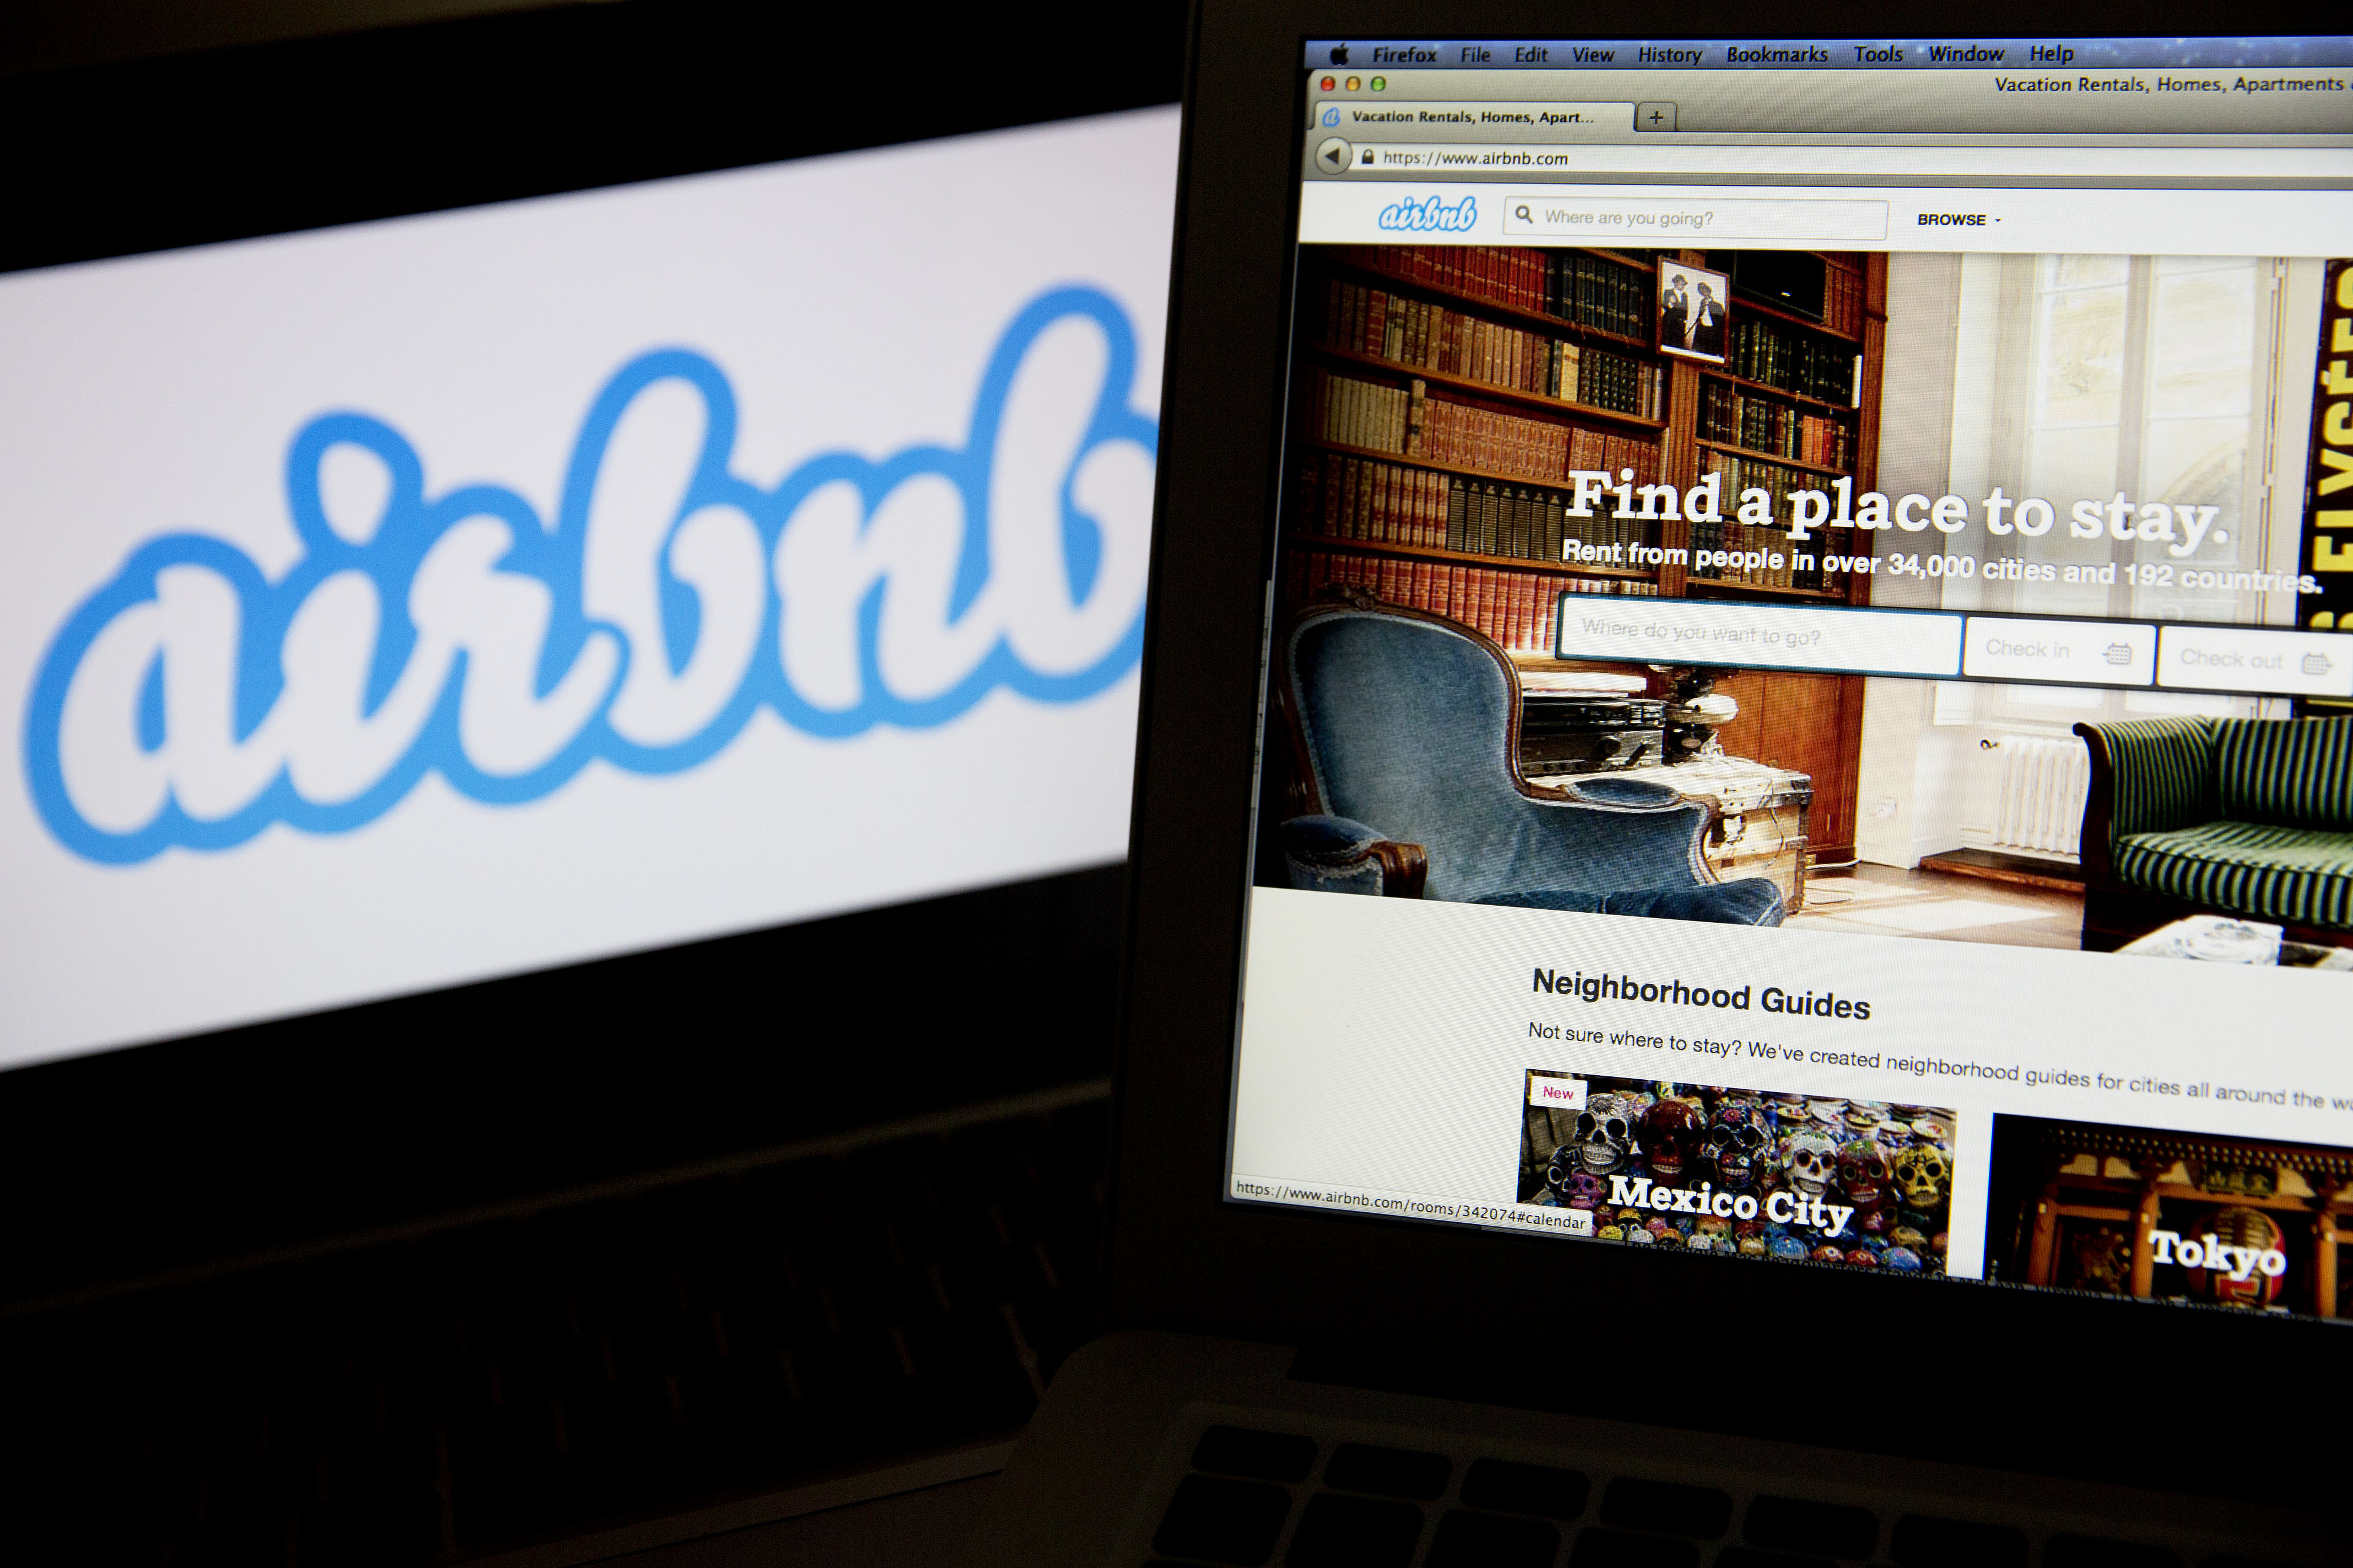 Airbnb Said to Be Raising Funding At $10 Billion Valuation